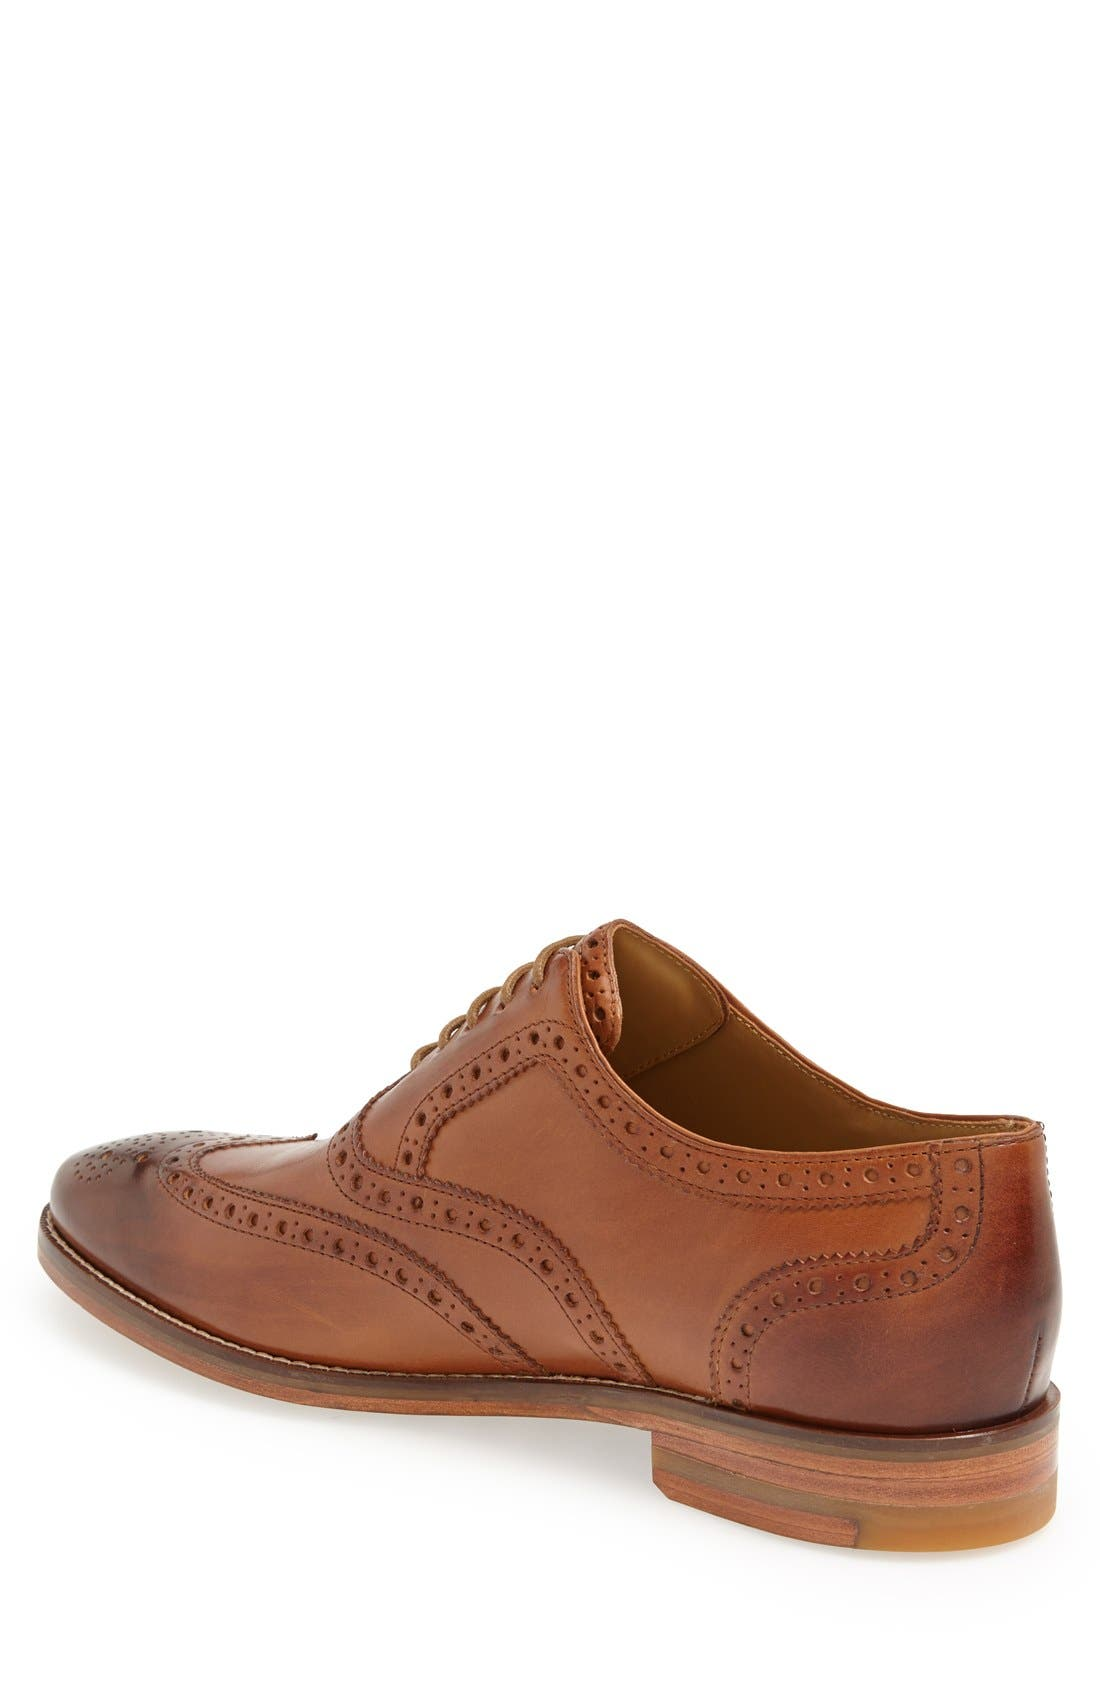 'Cambridge' Wingtip,                             Alternate thumbnail 2, color,                             British Tan Leather